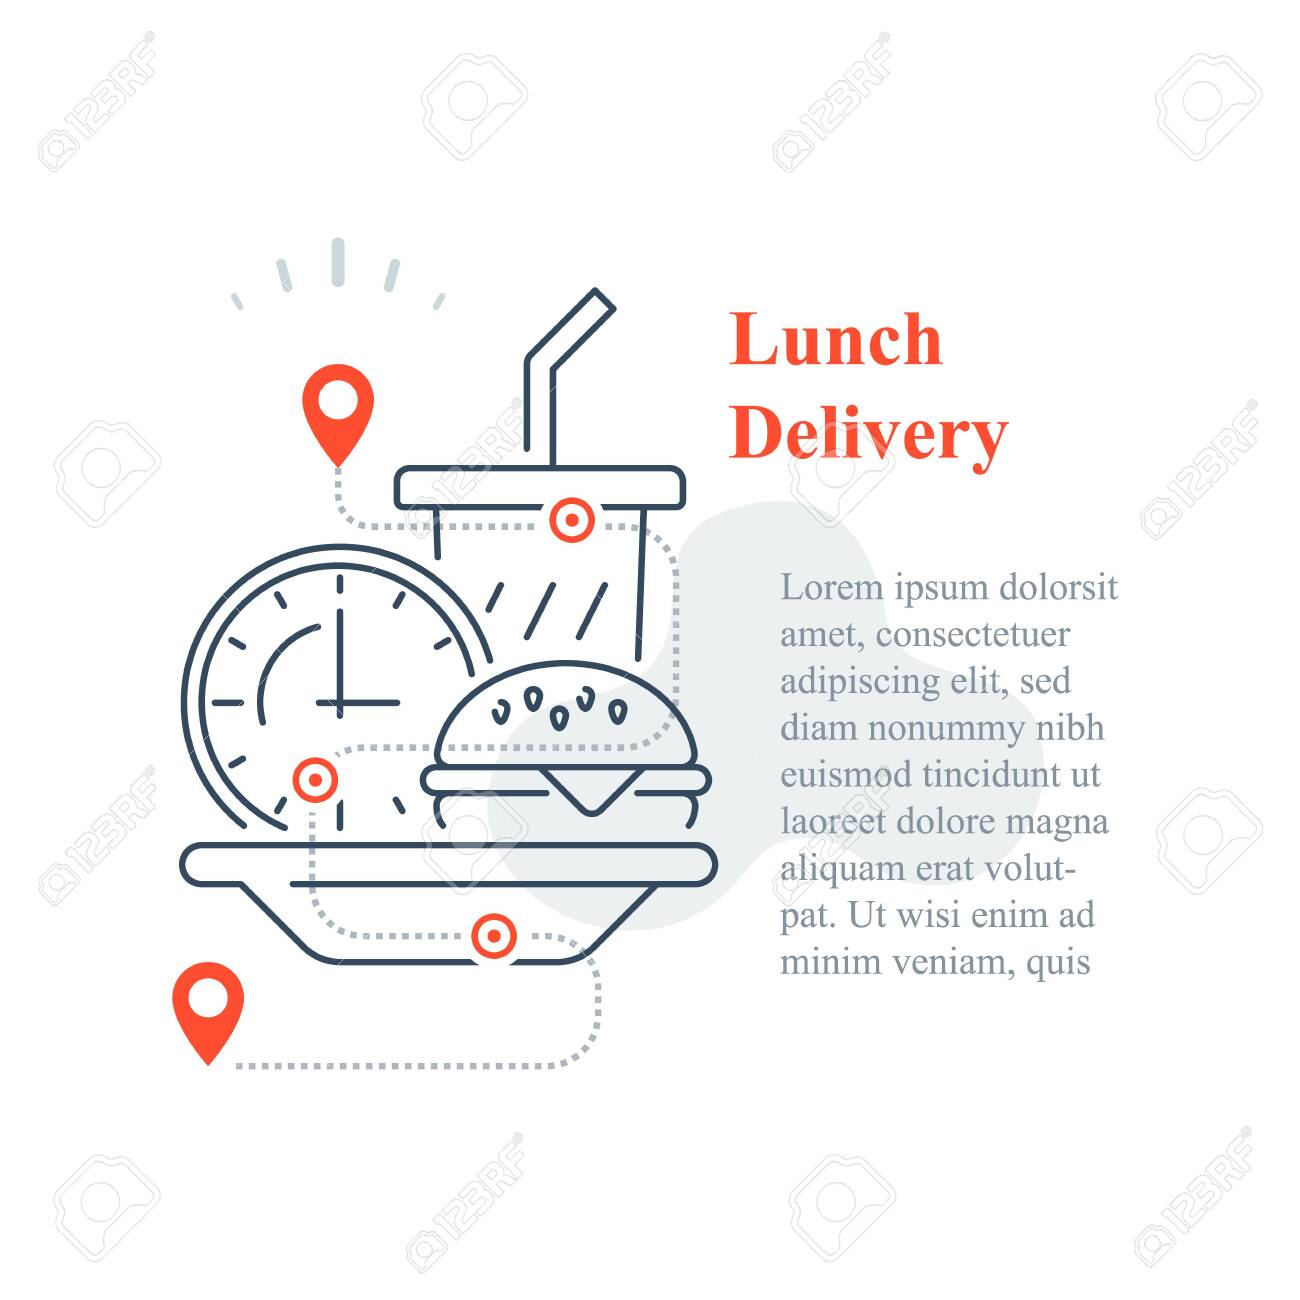 Fast food delivery to home, eat at home, order meal, vector line icon - 144943749